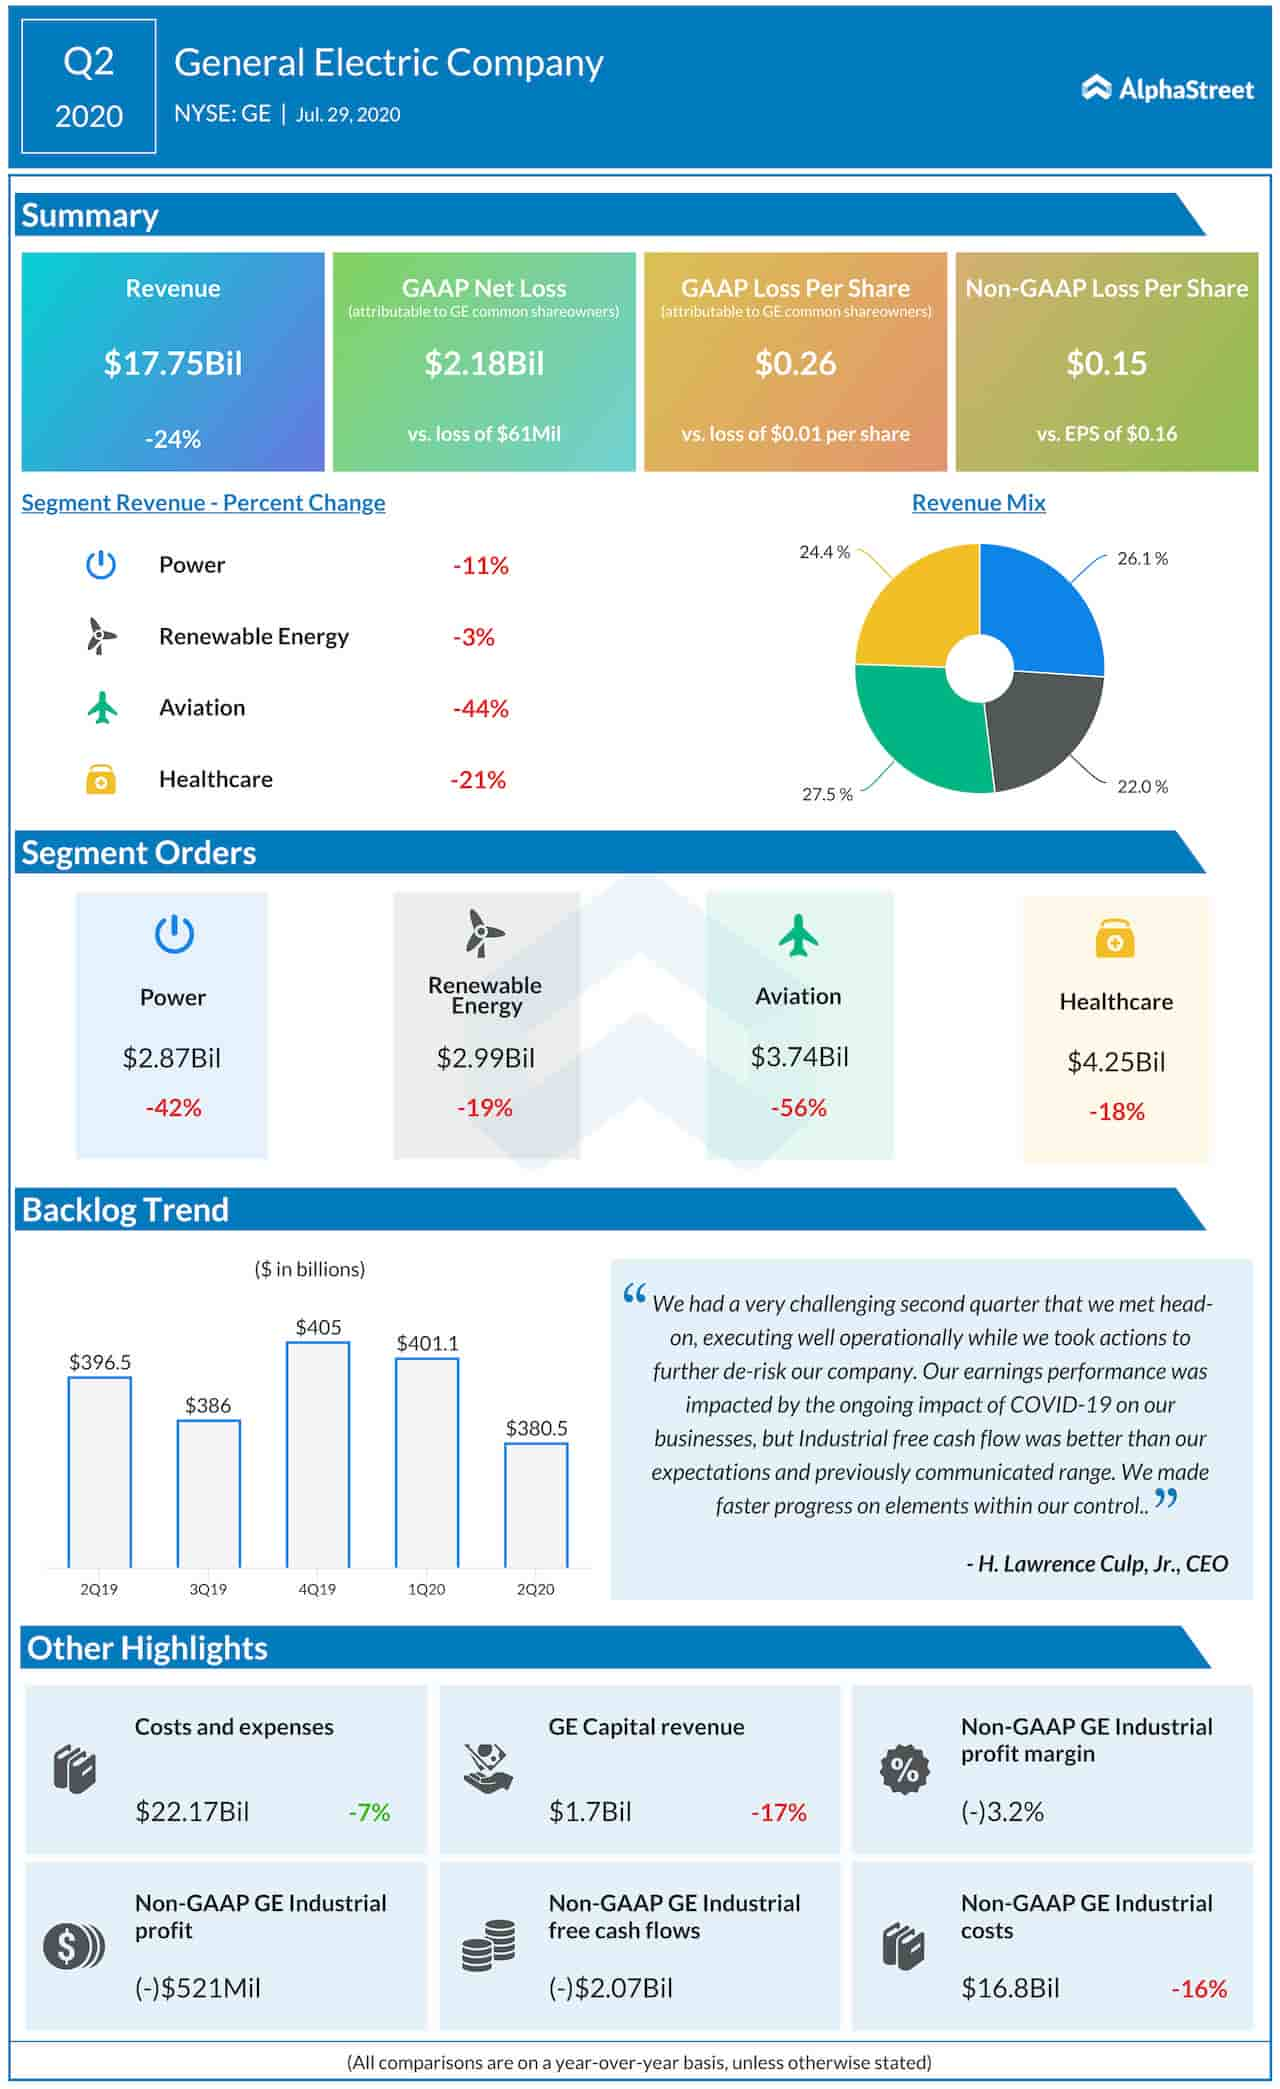 General Electric Company Q2 2020 earnings infographic